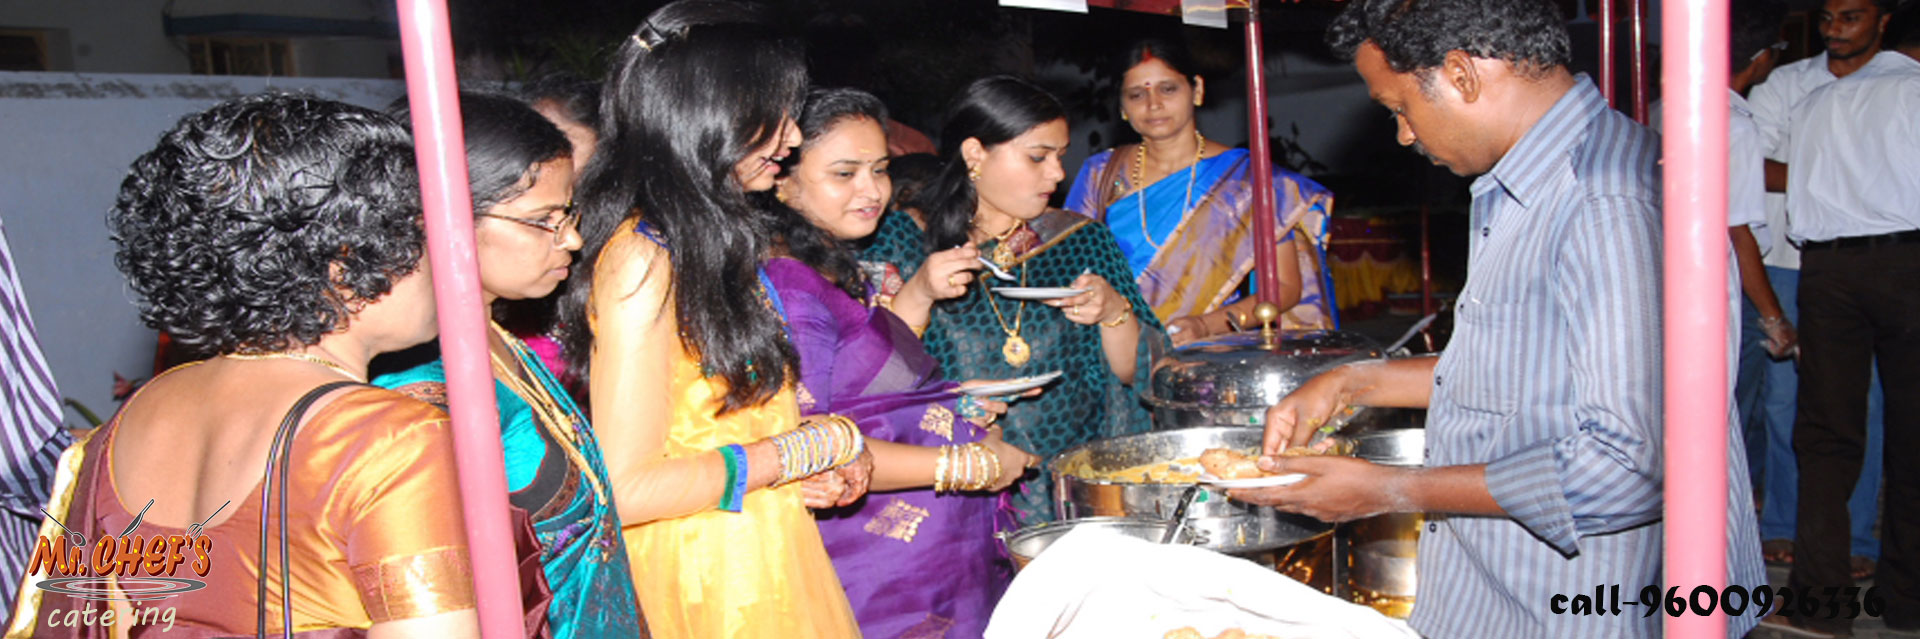 marriage catering services in coimbatore